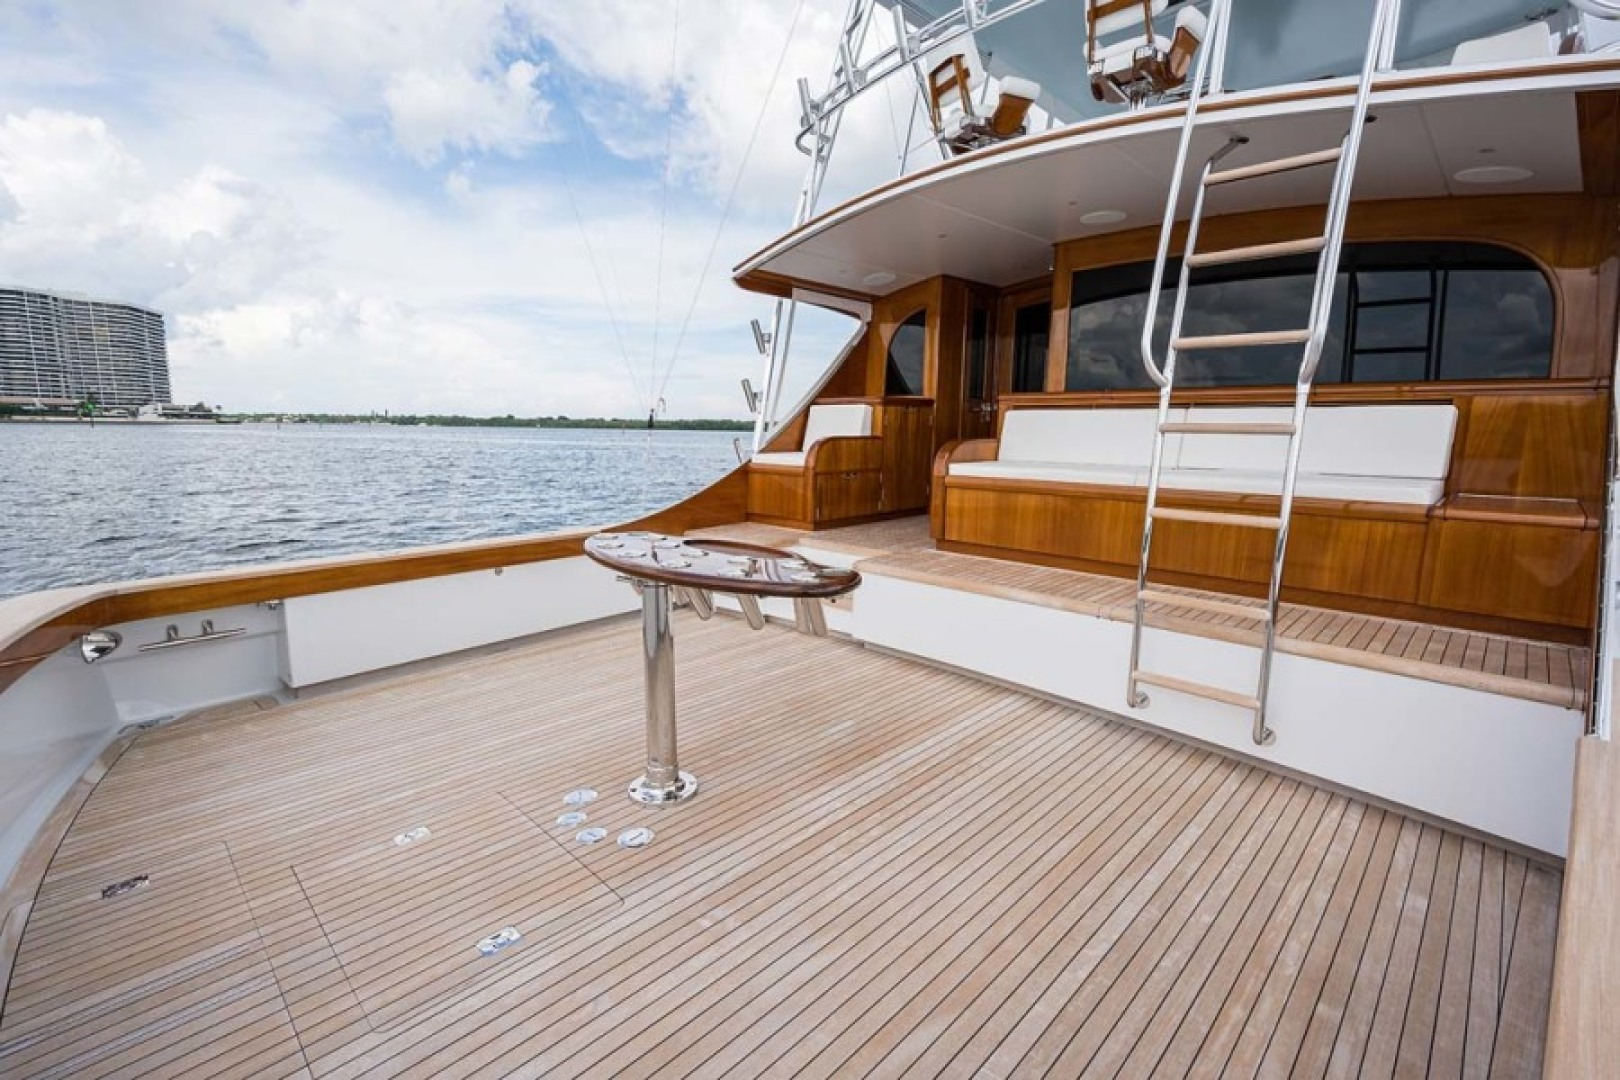 Rybovich-73 Convertible 2018-No Agenda North Palm Beach-Florida-United States-Teak Deck and Covering Boards-1486380 | Thumbnail